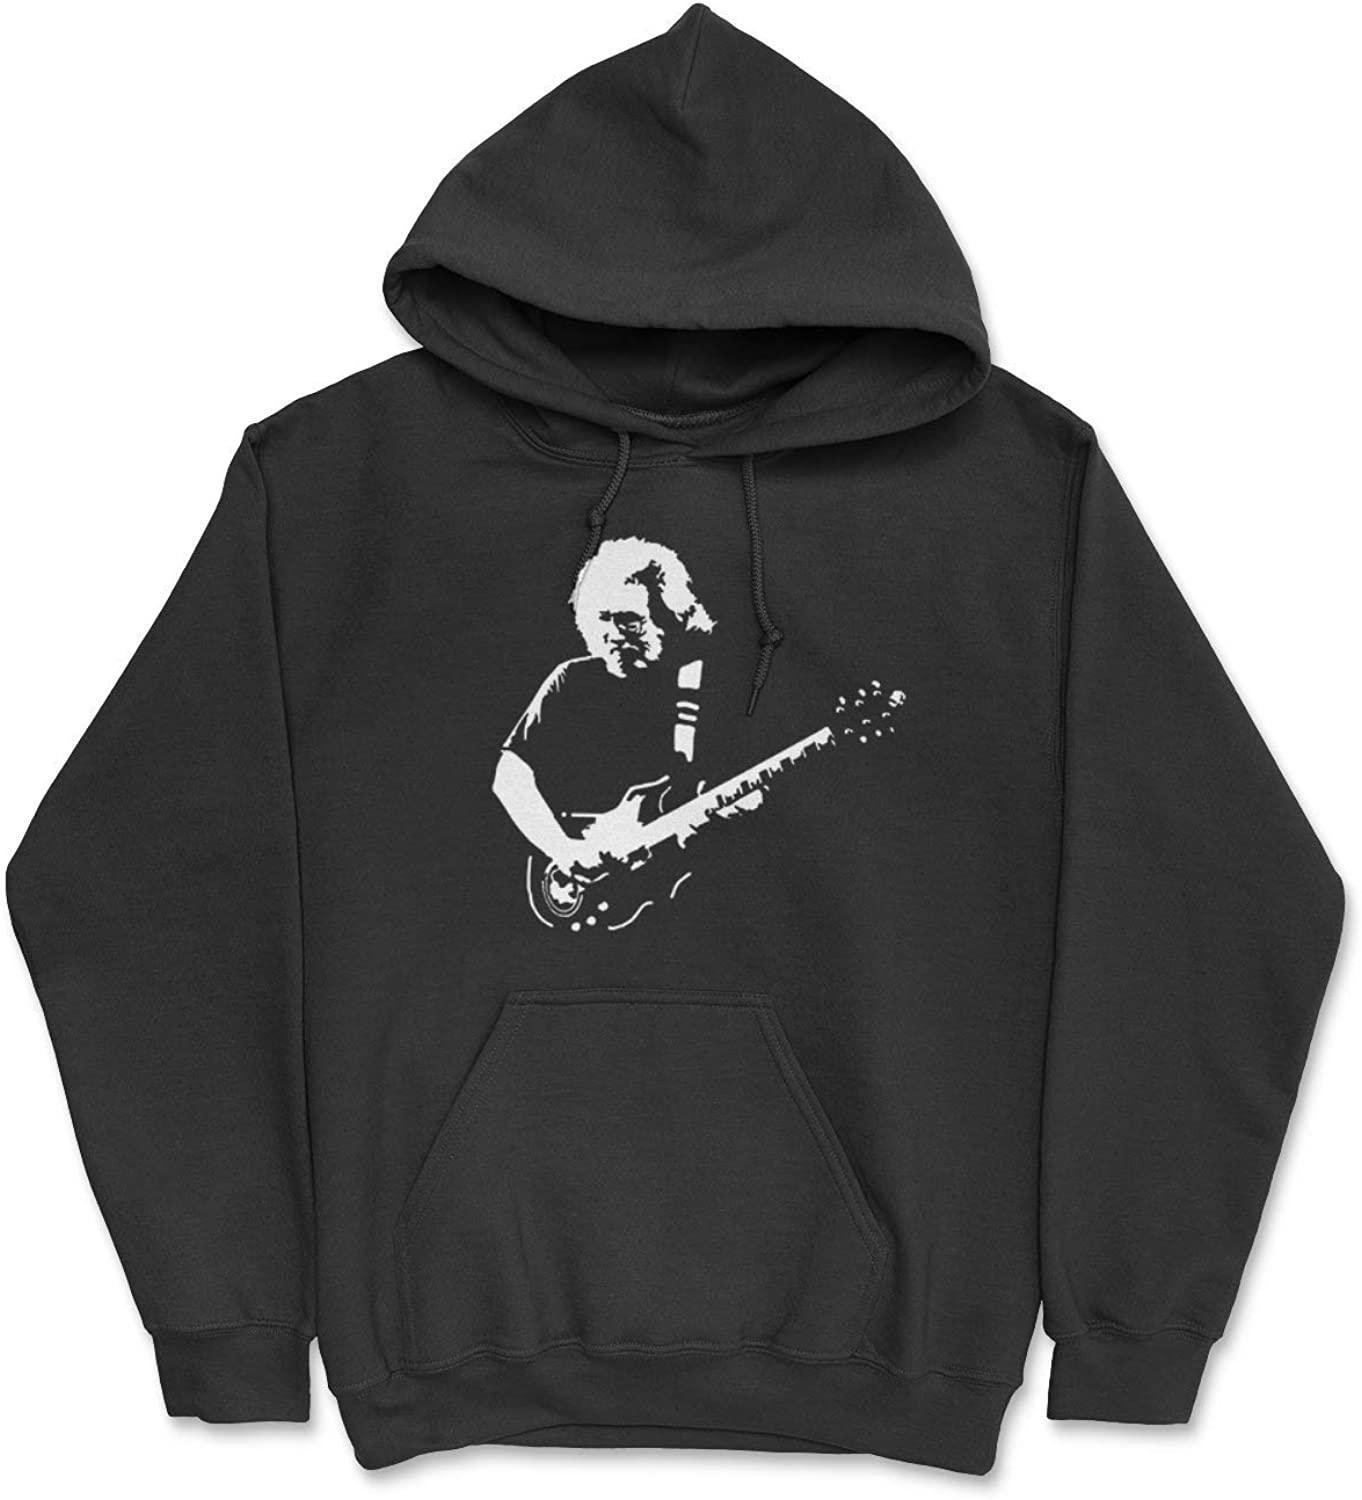 ZJ プレゼント Deisgns Jerry Garcia Tribute 定価 T-Shirt World Premiu of Eyes The